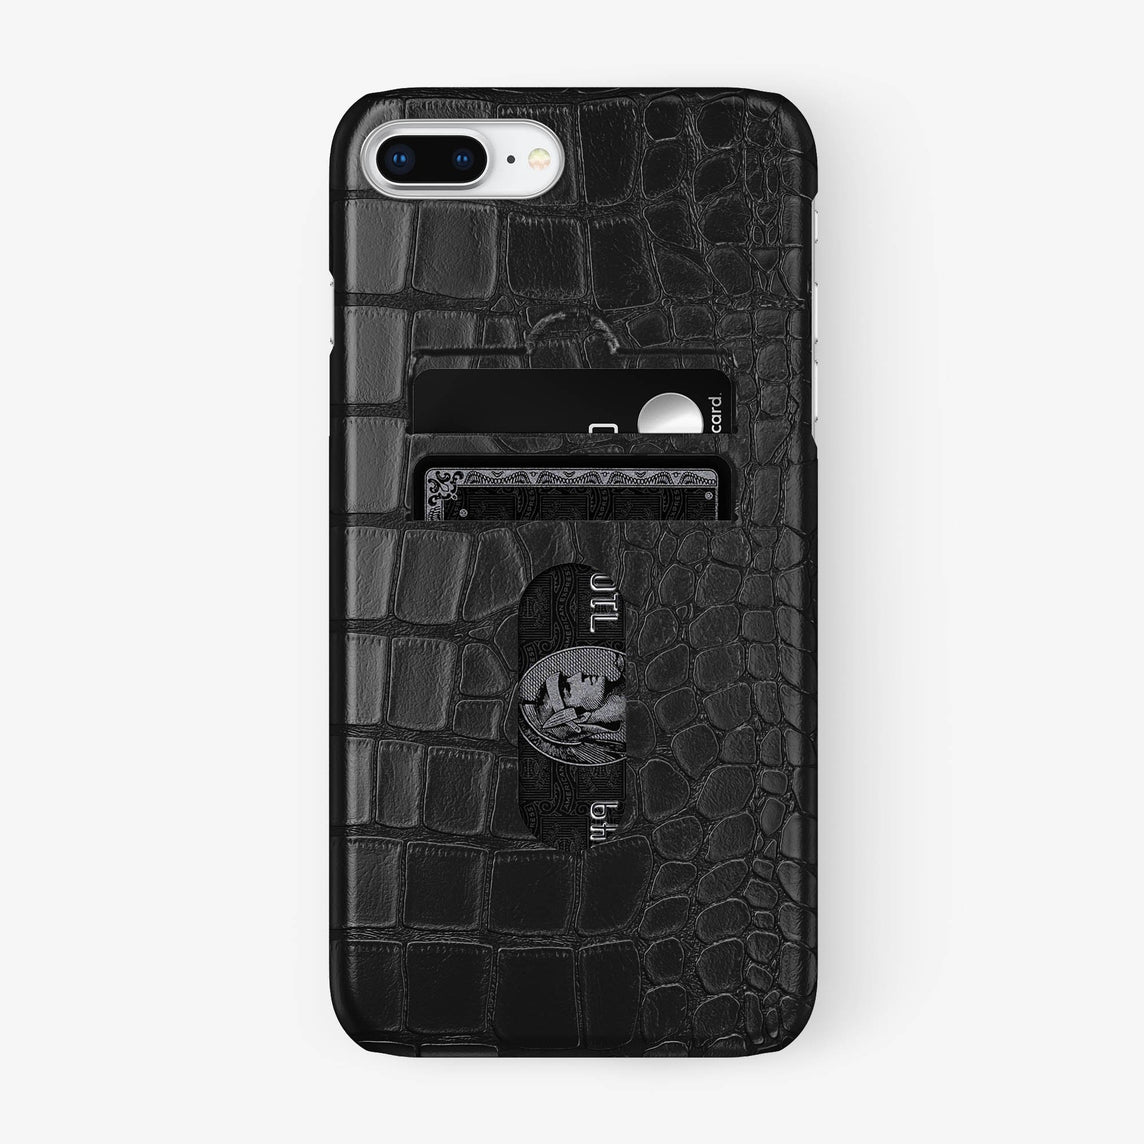 Alligator Card Holder Case iPhone 7/8 Plus | Black - Stainless Steel